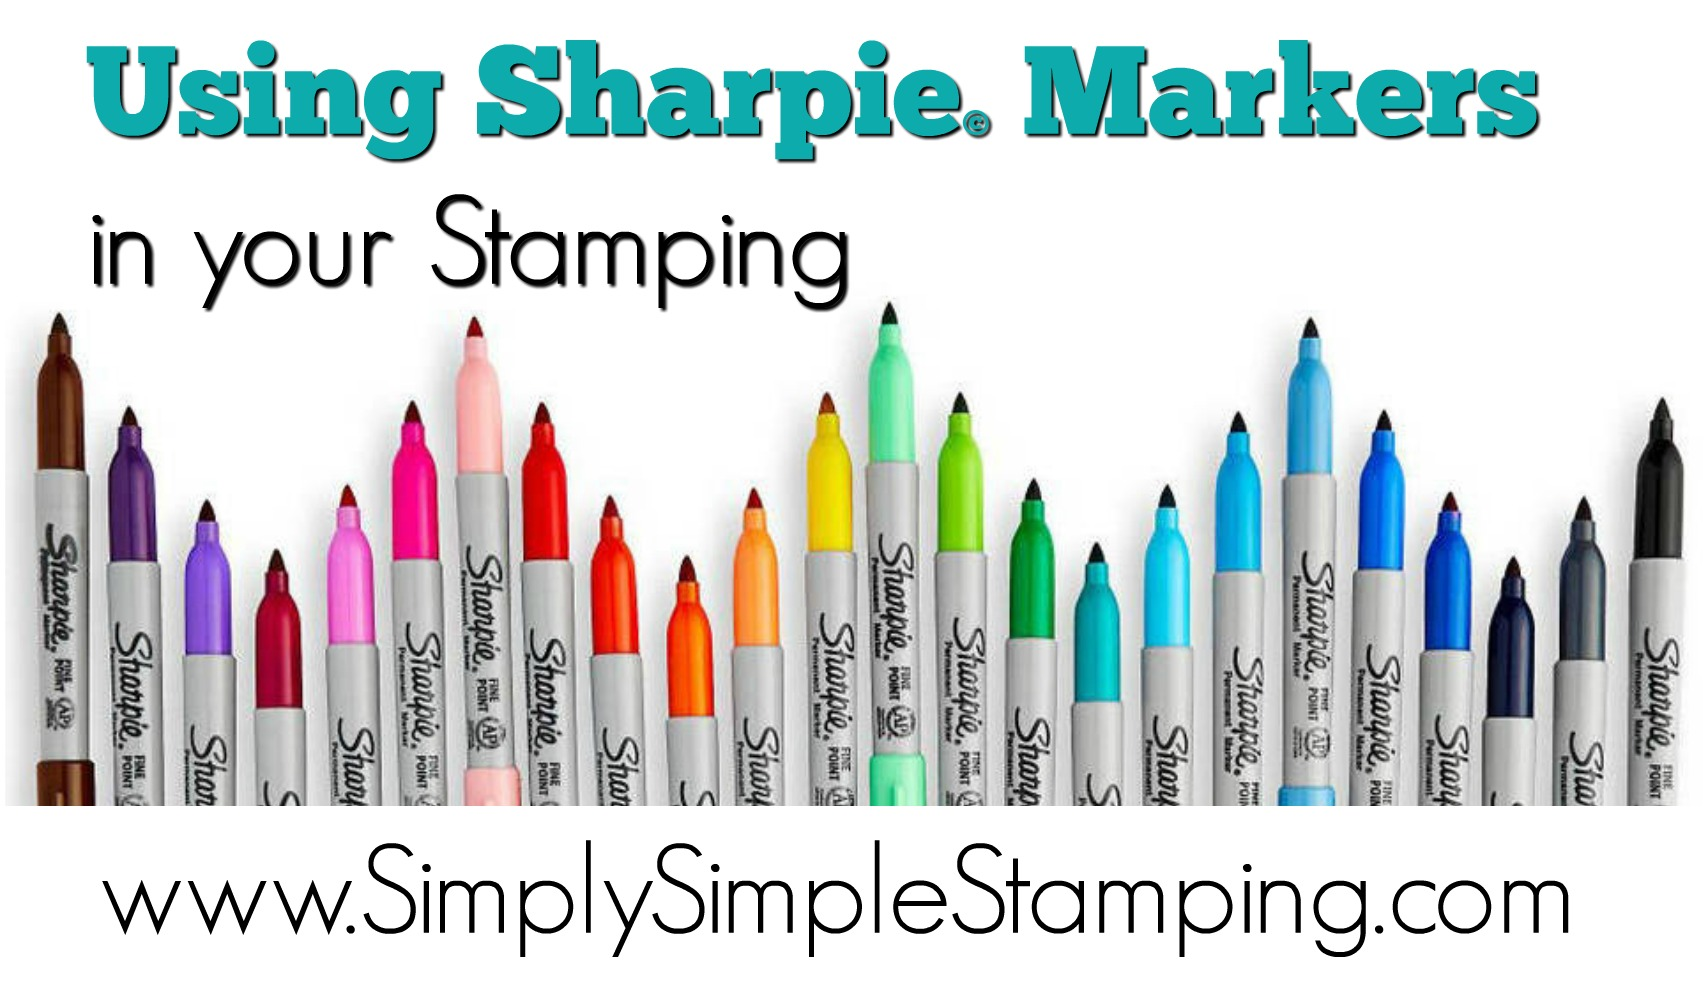 2-Minute Tuesday Tip - Using Sharpie Markers in your Stamping - check it out at www.SimplySimpleStamping.com - September 19, 2017